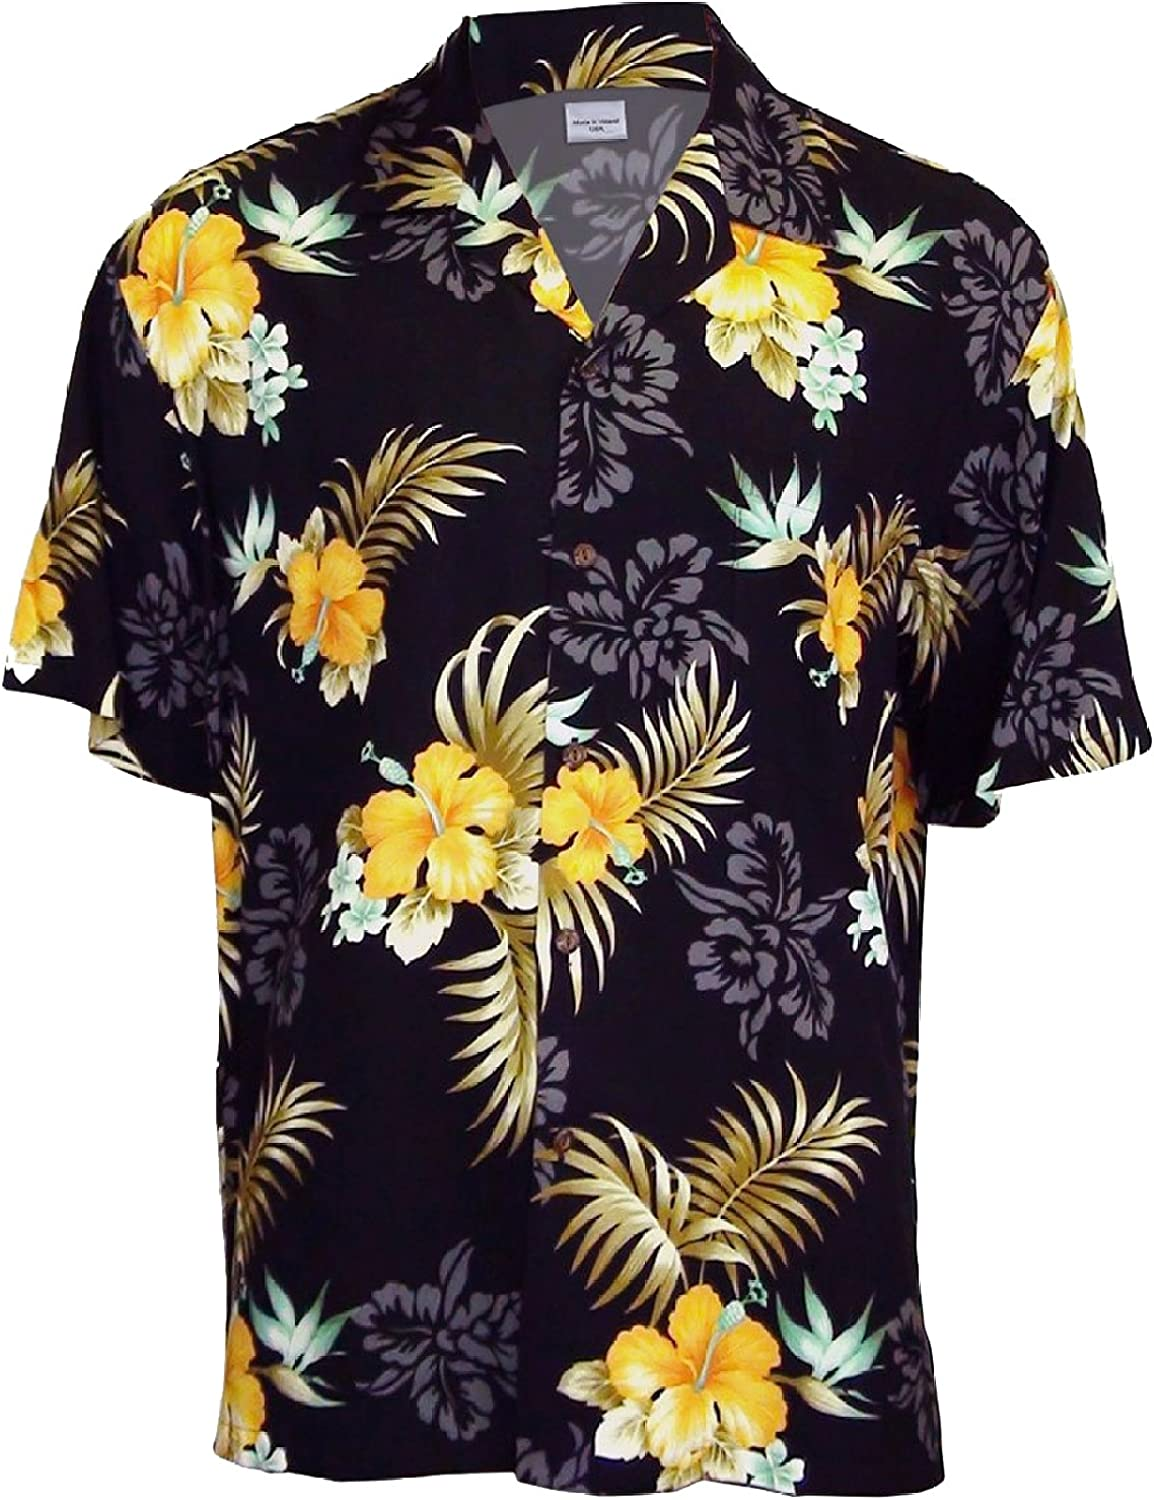 Two Palms Men's Fern New arrival Rayon Hibiscus Shirt Max 71% OFF